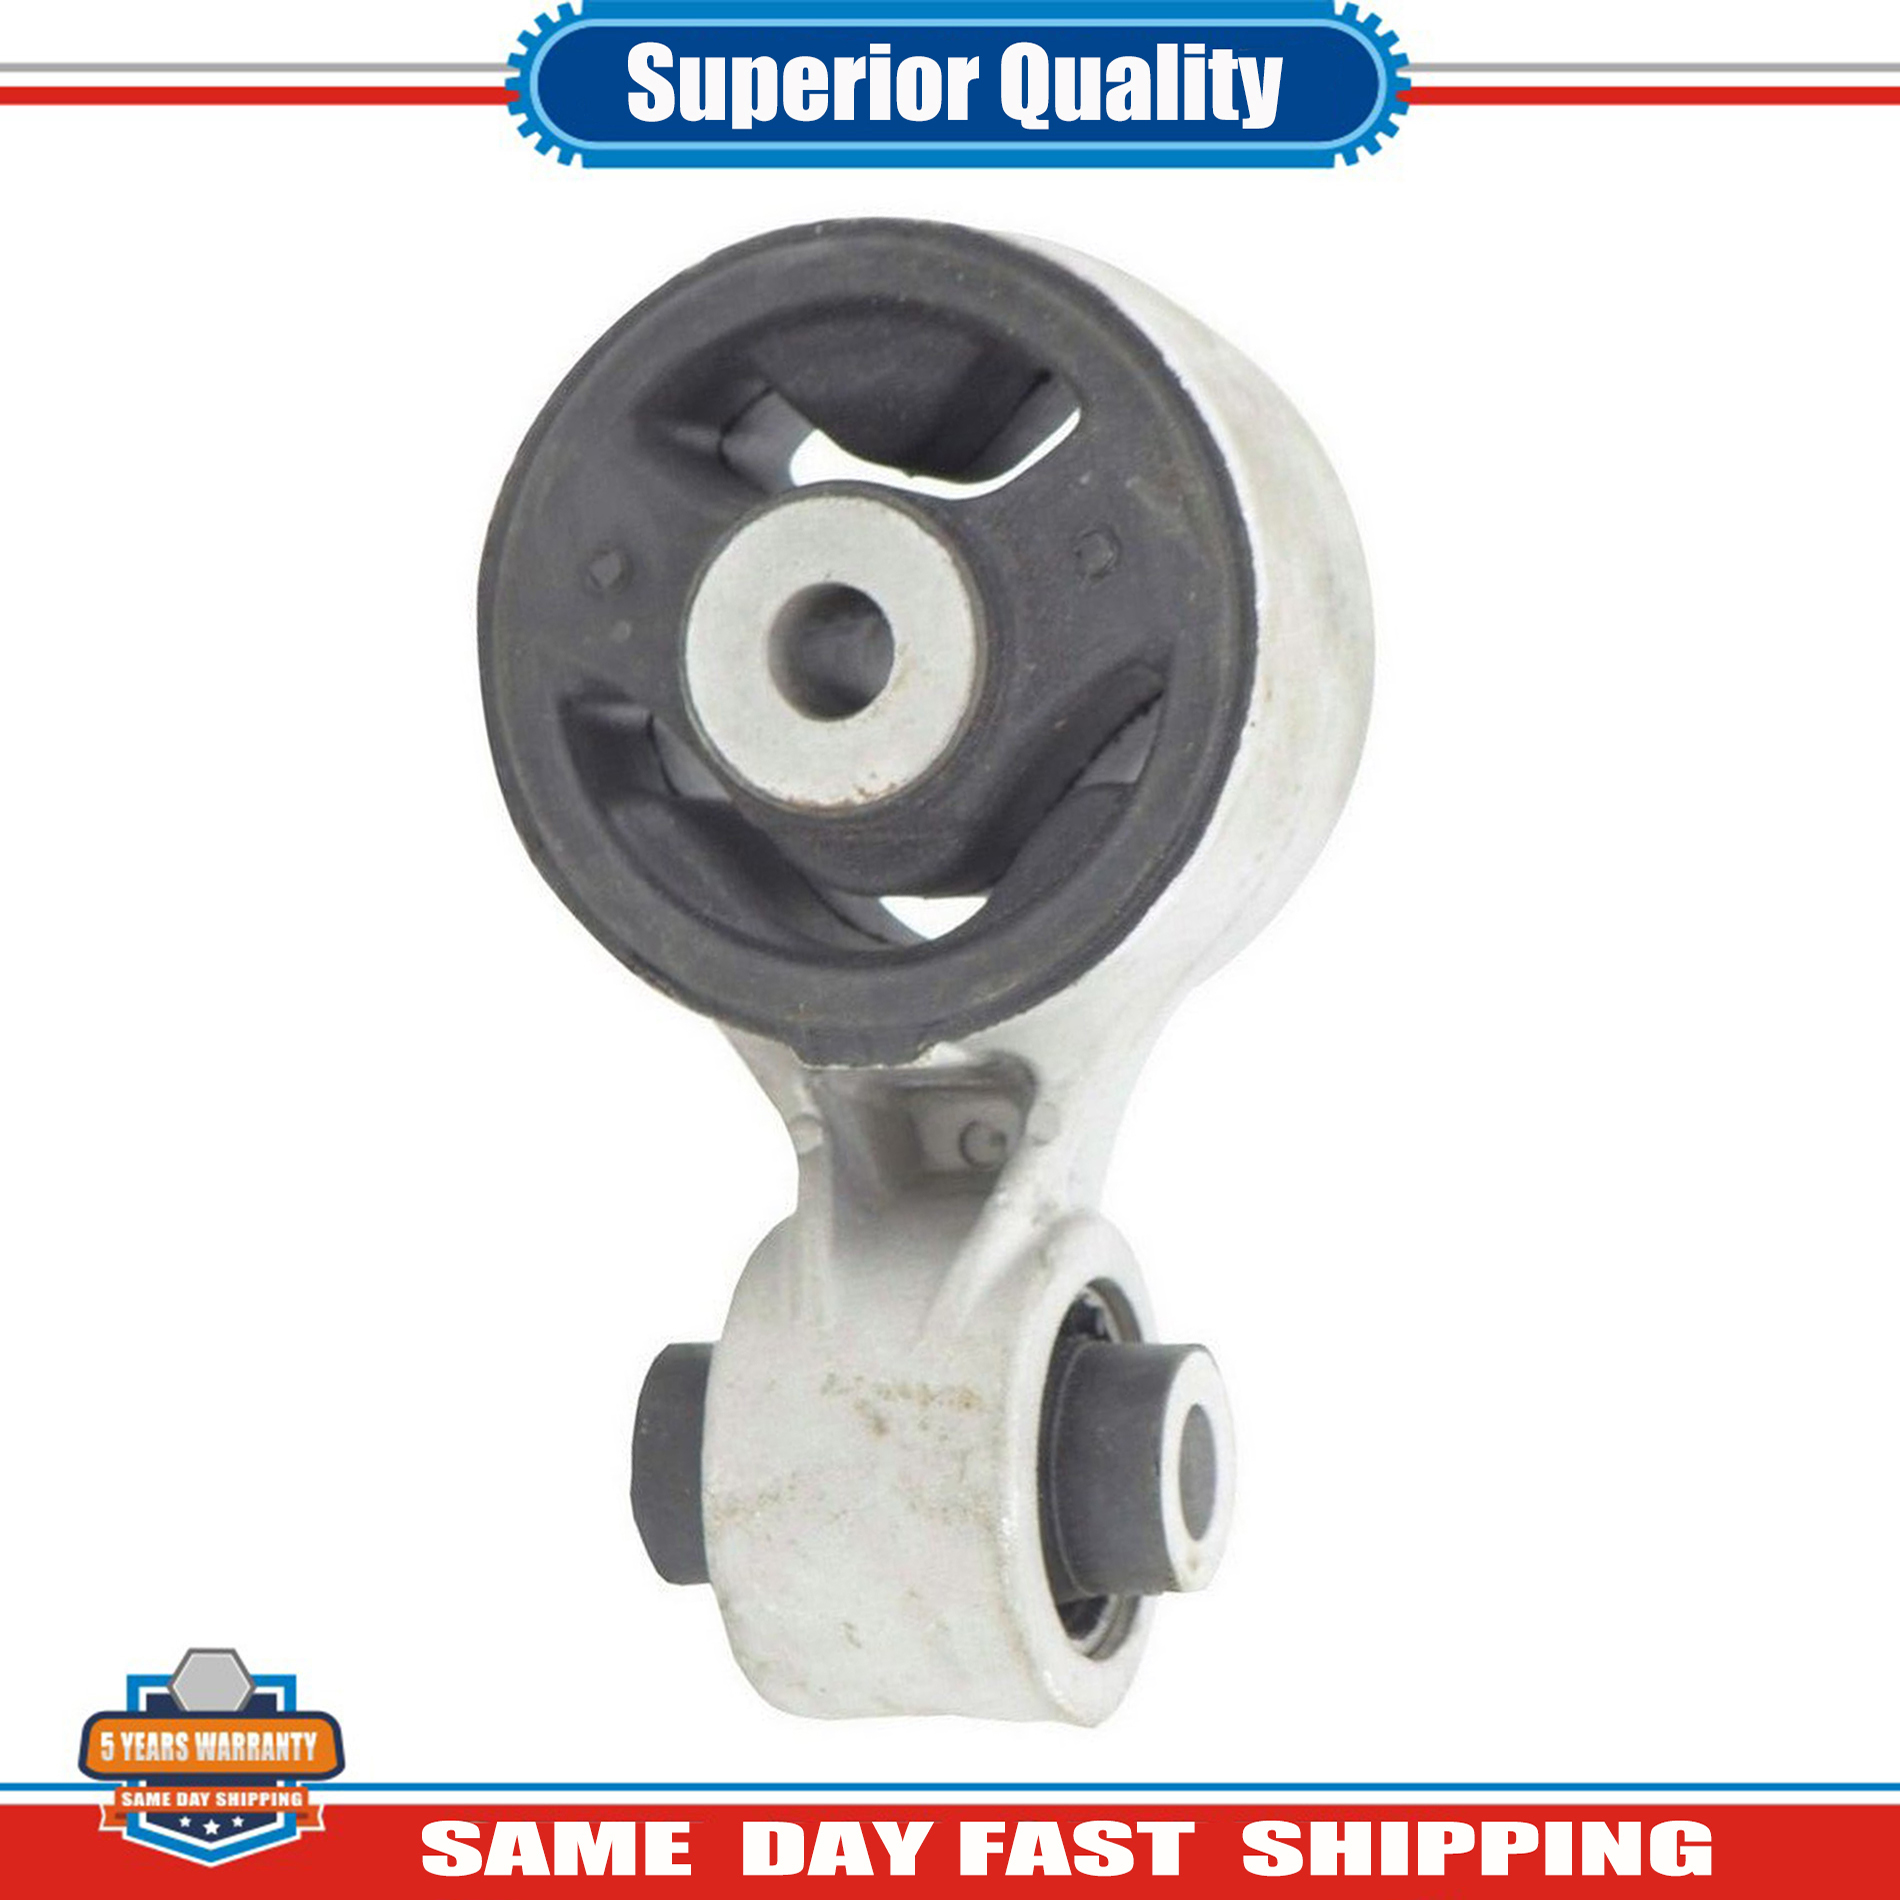 Engine Mount 4589 Torque Strut Front Lower For Acura CSX